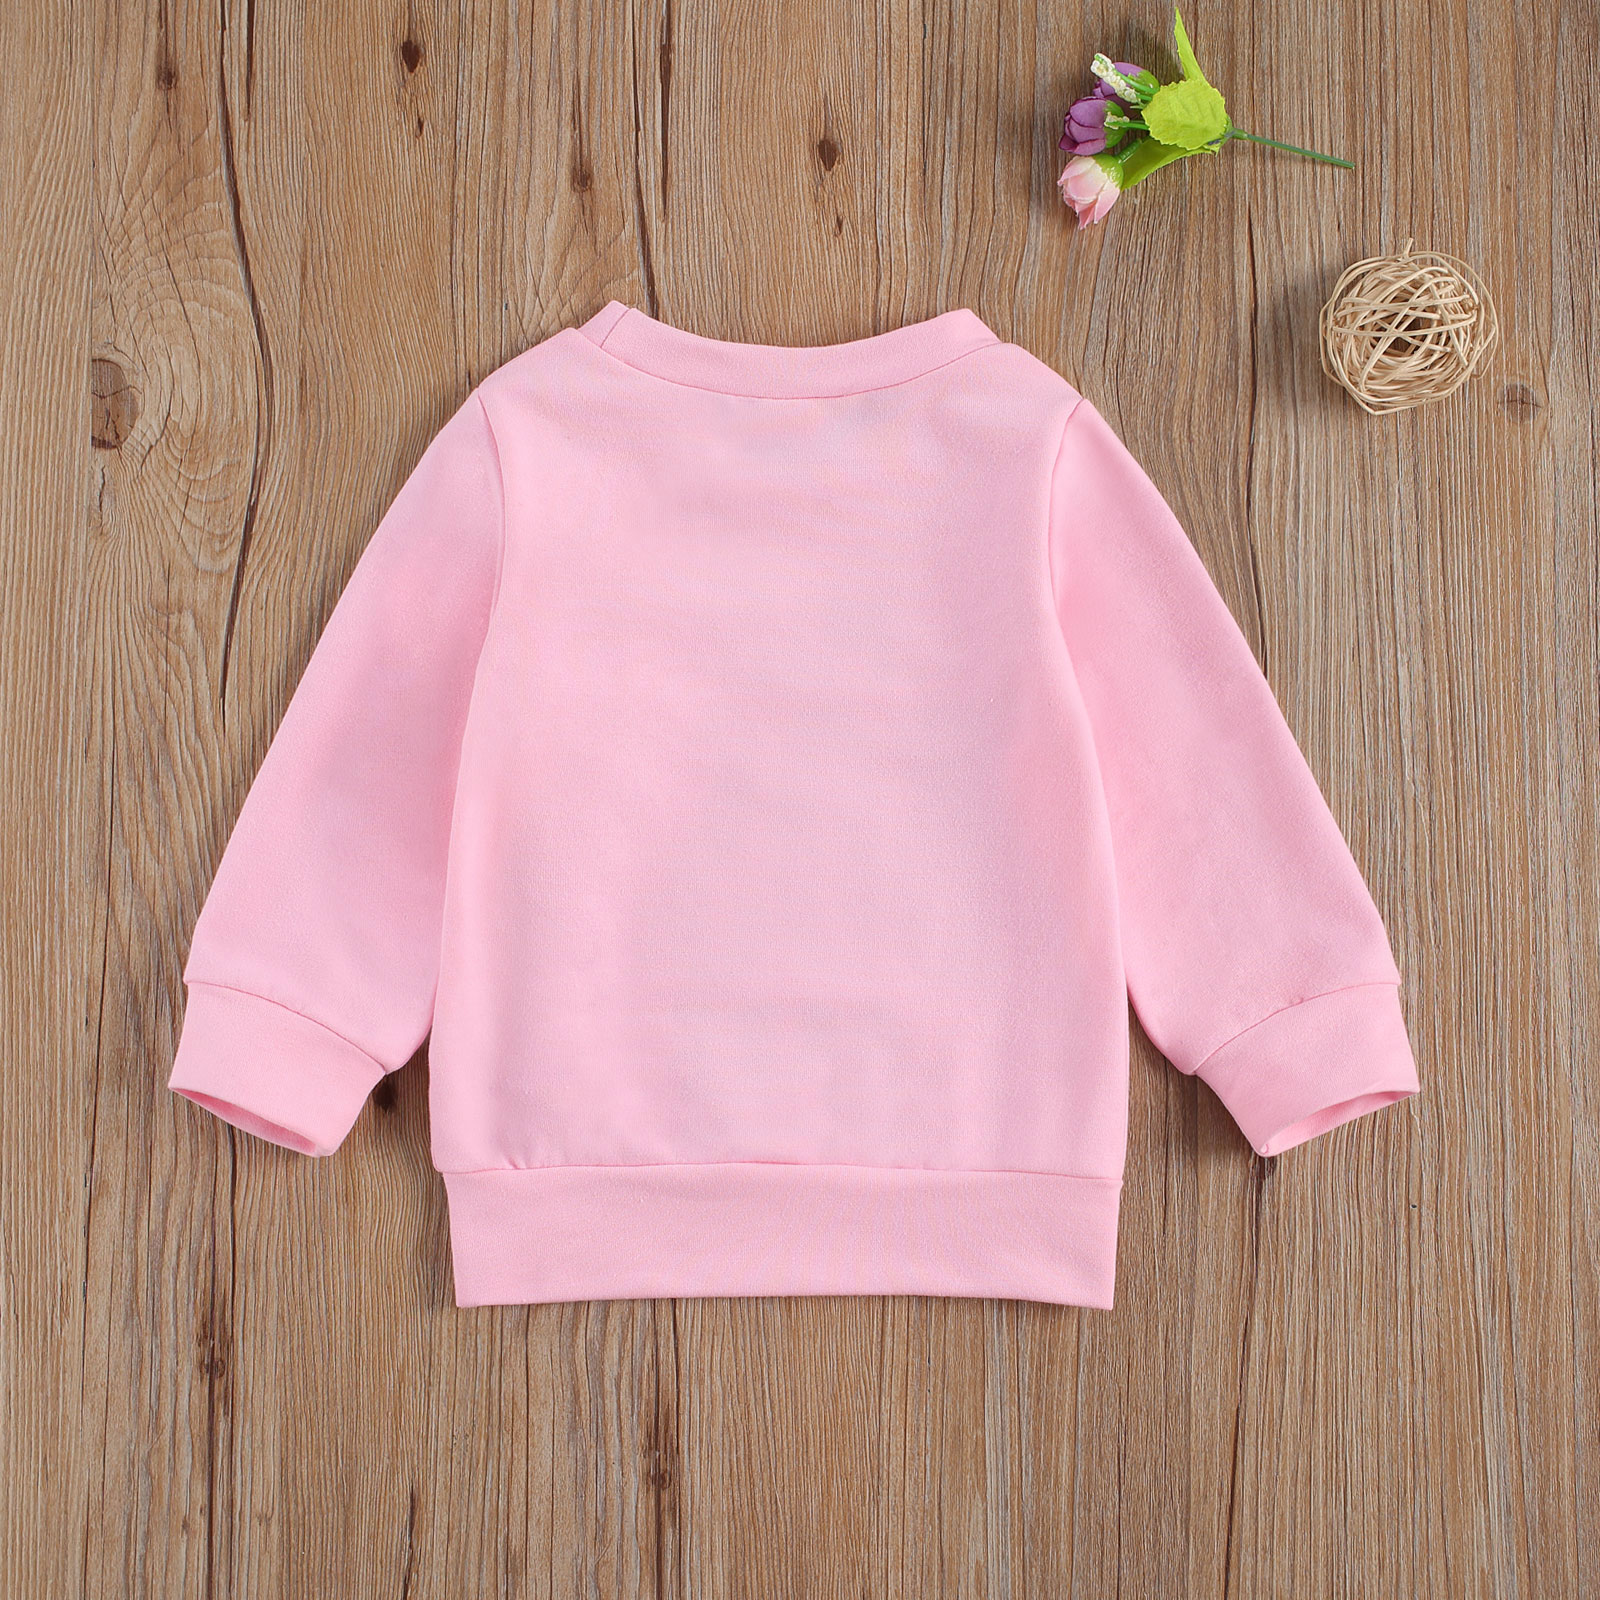 Newborn Baby Girls Boys Hoodies Infant's Round Neck Long Sleeve Sweatshirts Letter Printed Clothes Hooded Tops Autumn Winter New 2